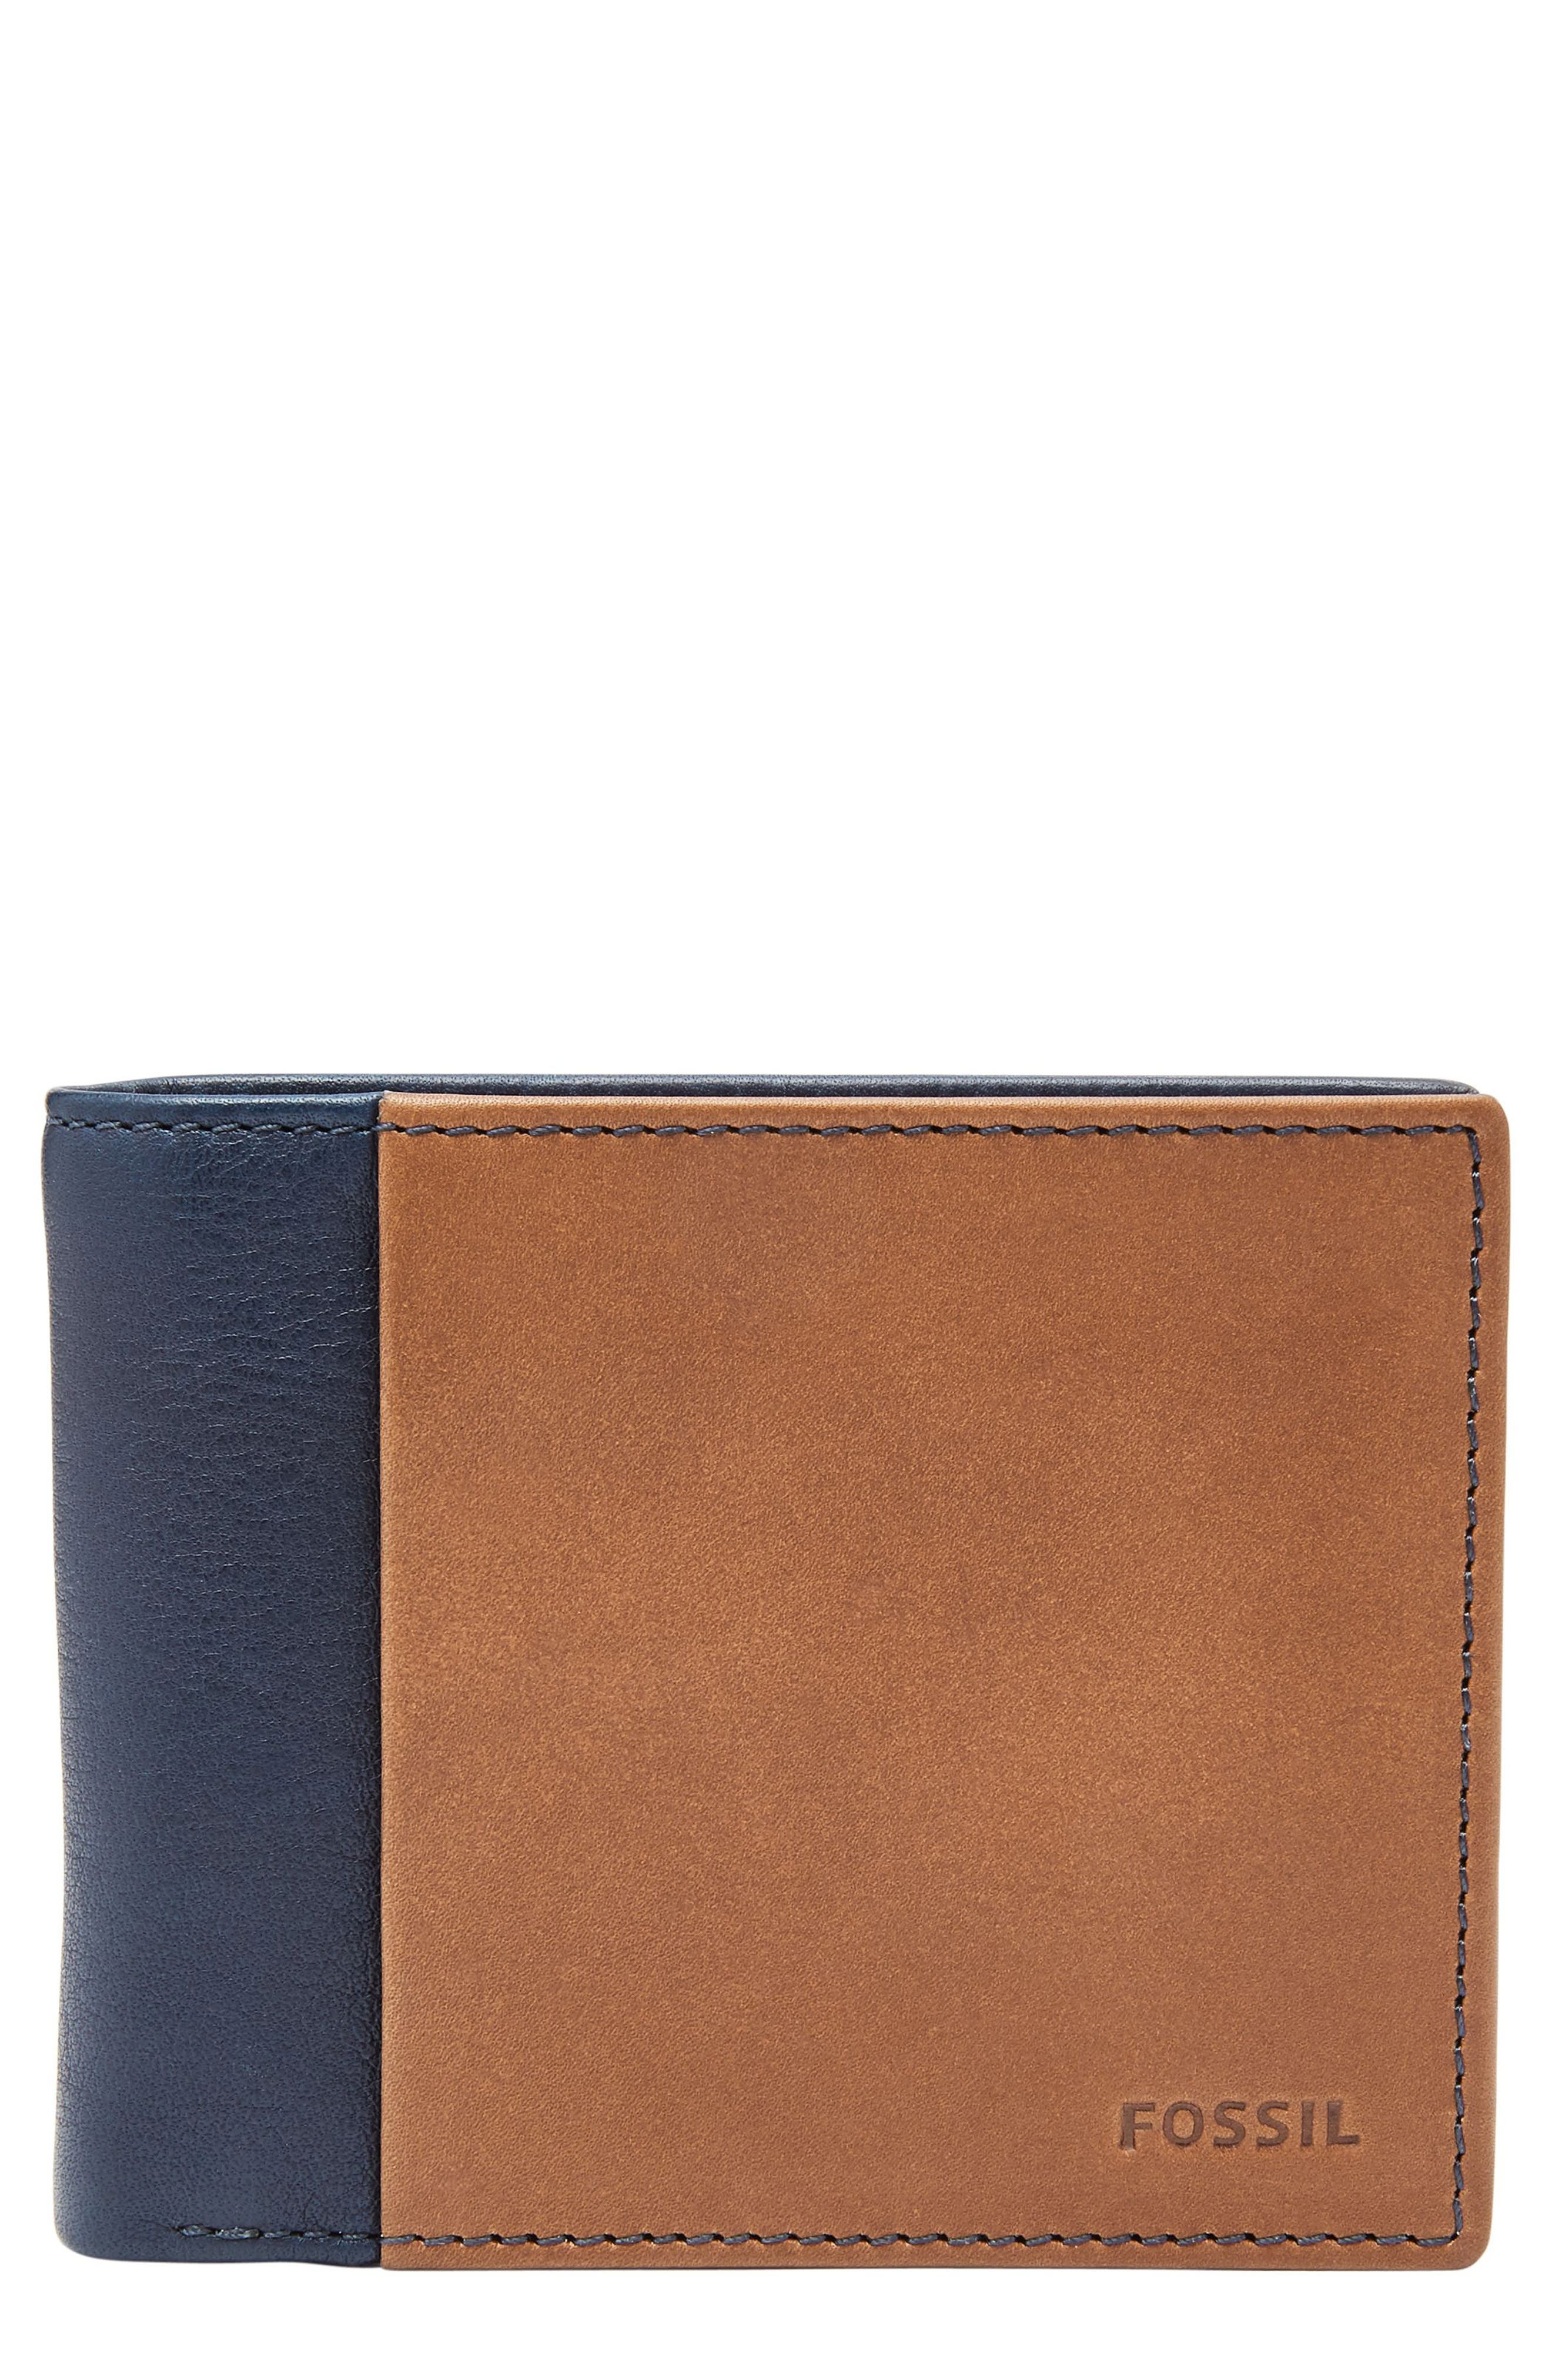 FOSSIL, Ward Leather Wallet, Main thumbnail 1, color, NAVY